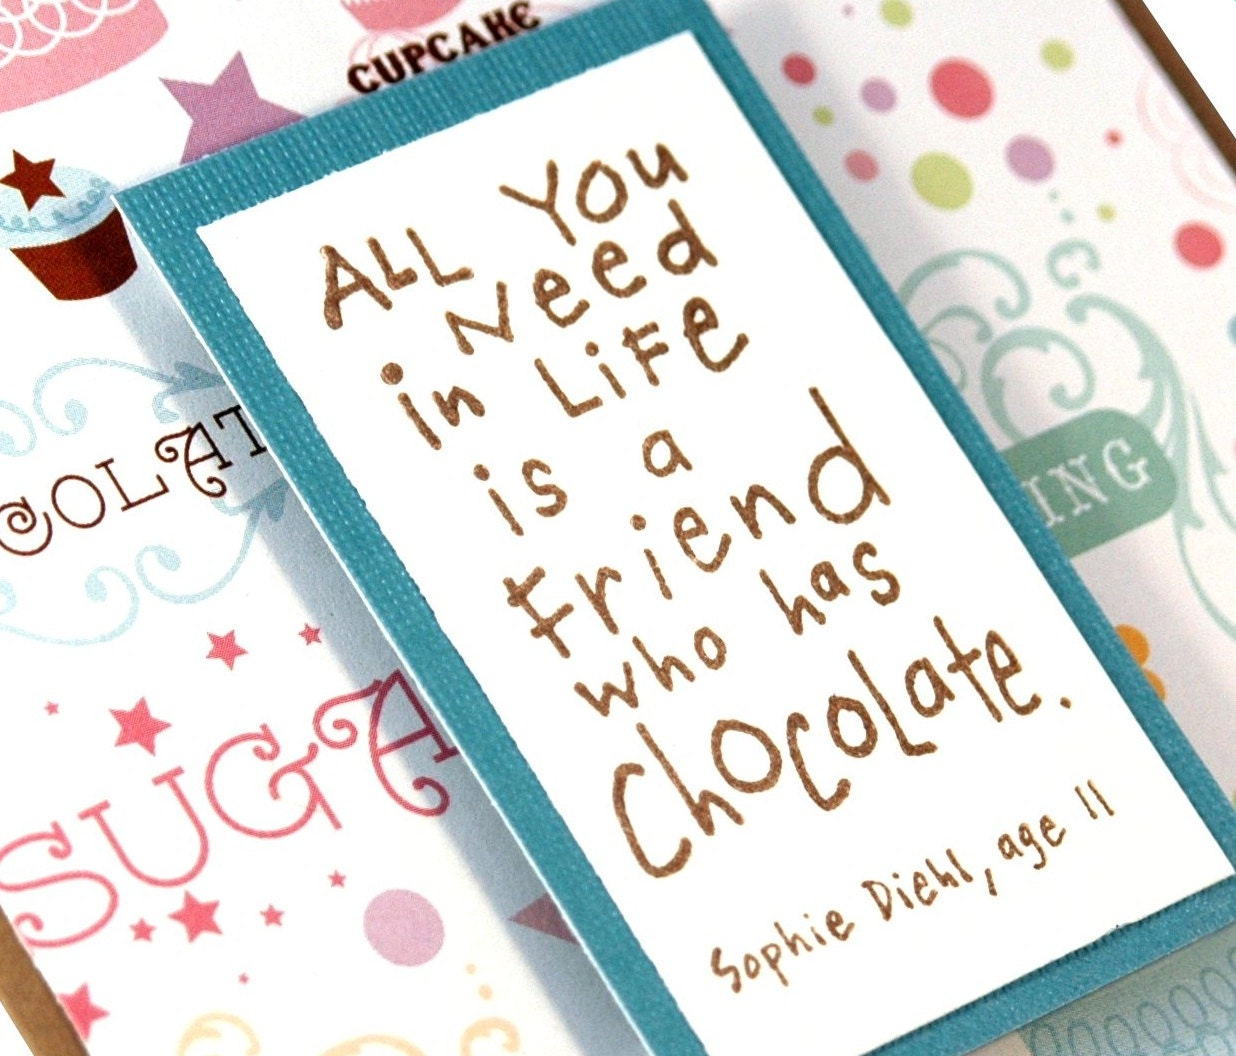 Card thinking of you card handmade greeting card zoom kristyandbryce Image collections